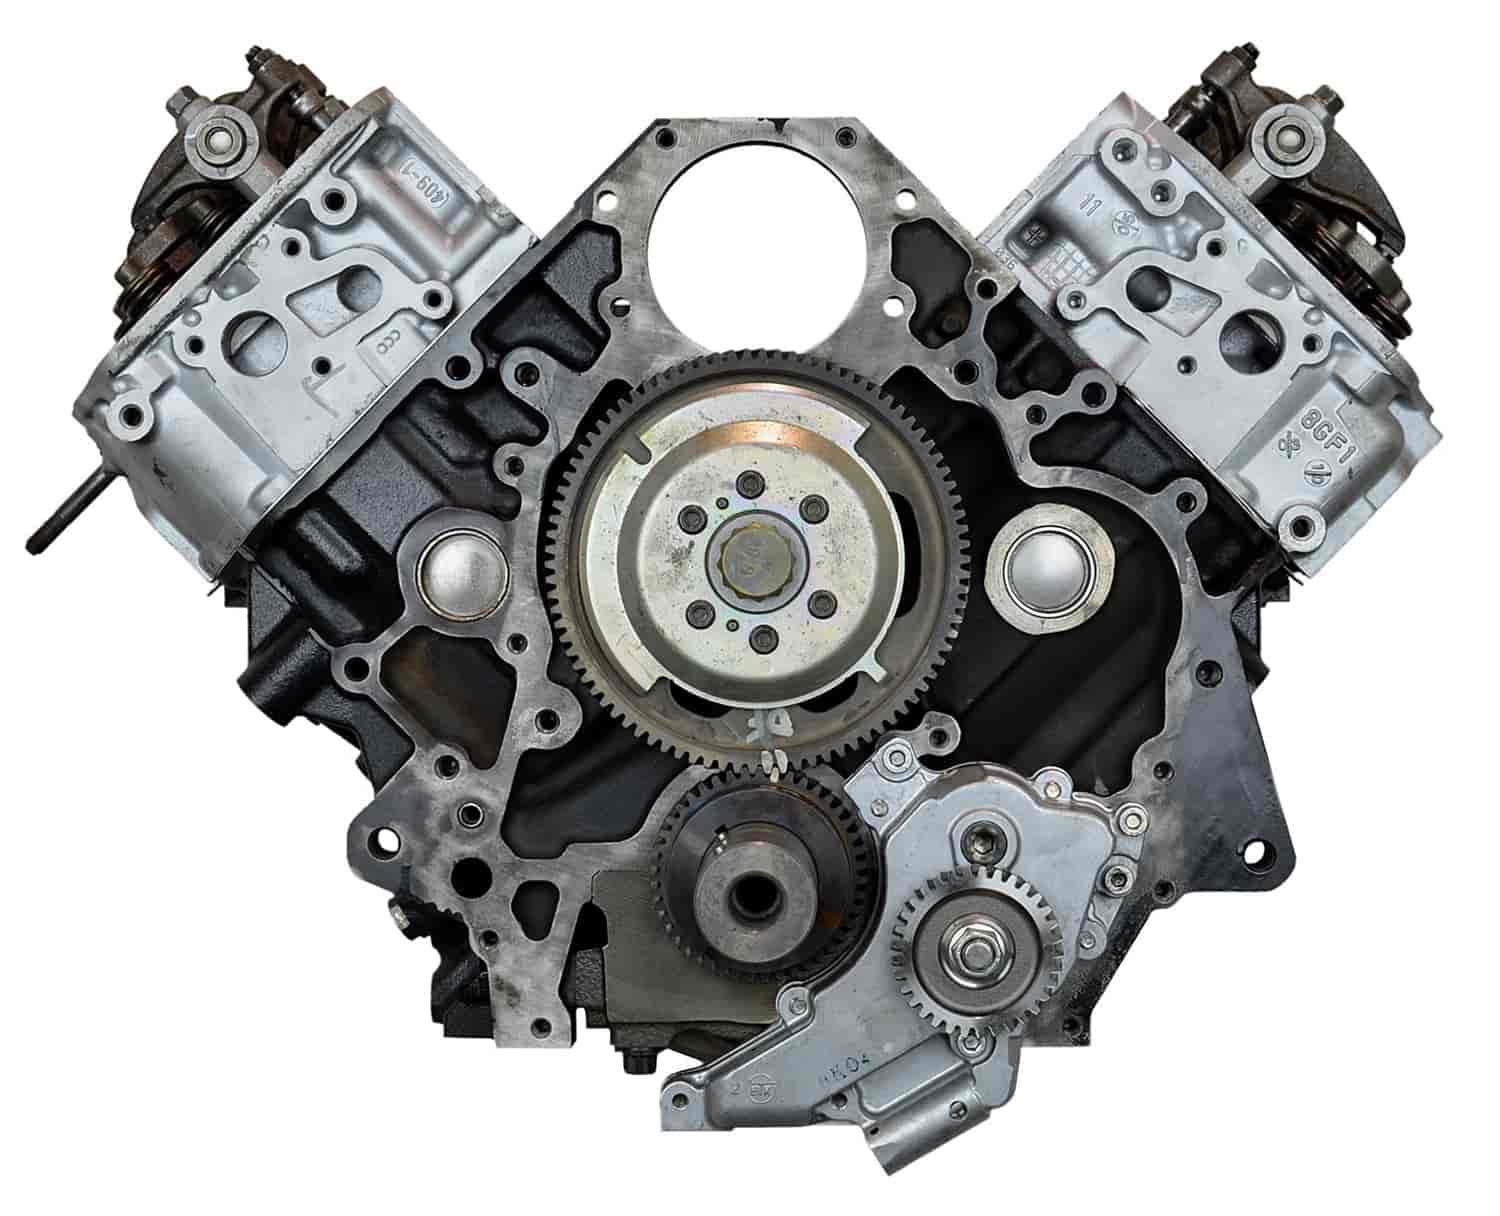 ATK Engines Remanufactured Crate Engine for 2004-2005 Chevy/GMC Medium Duty  Truck with 6 6L Duramax Turbo Diesel V8